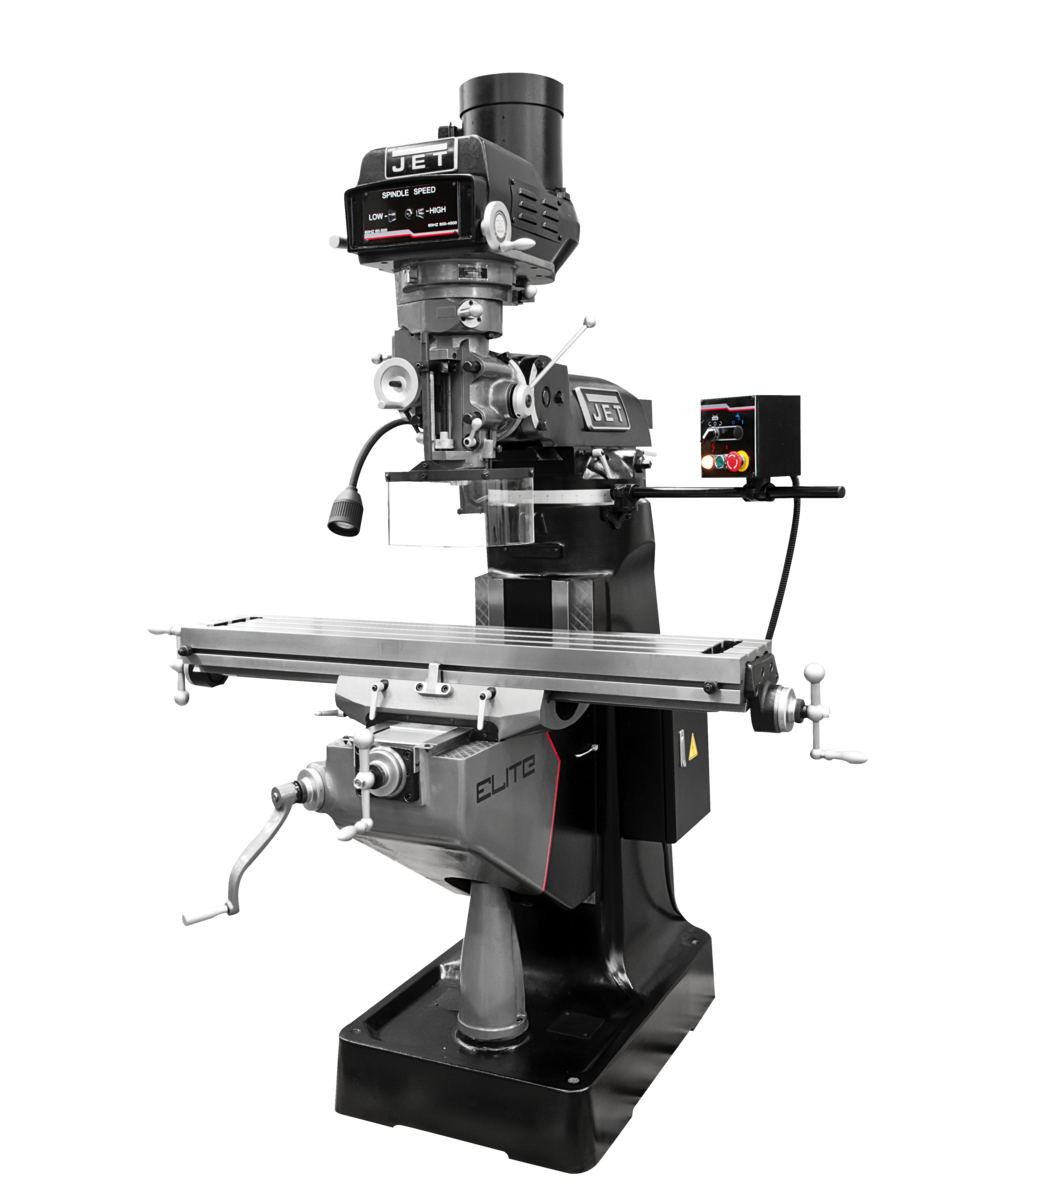 ETM-949 Mill with 3-Axis Newall DP700 (Quill) DRO and X, Y, Z-Axis JET Powerfeeds and USA Made Air Draw Bar